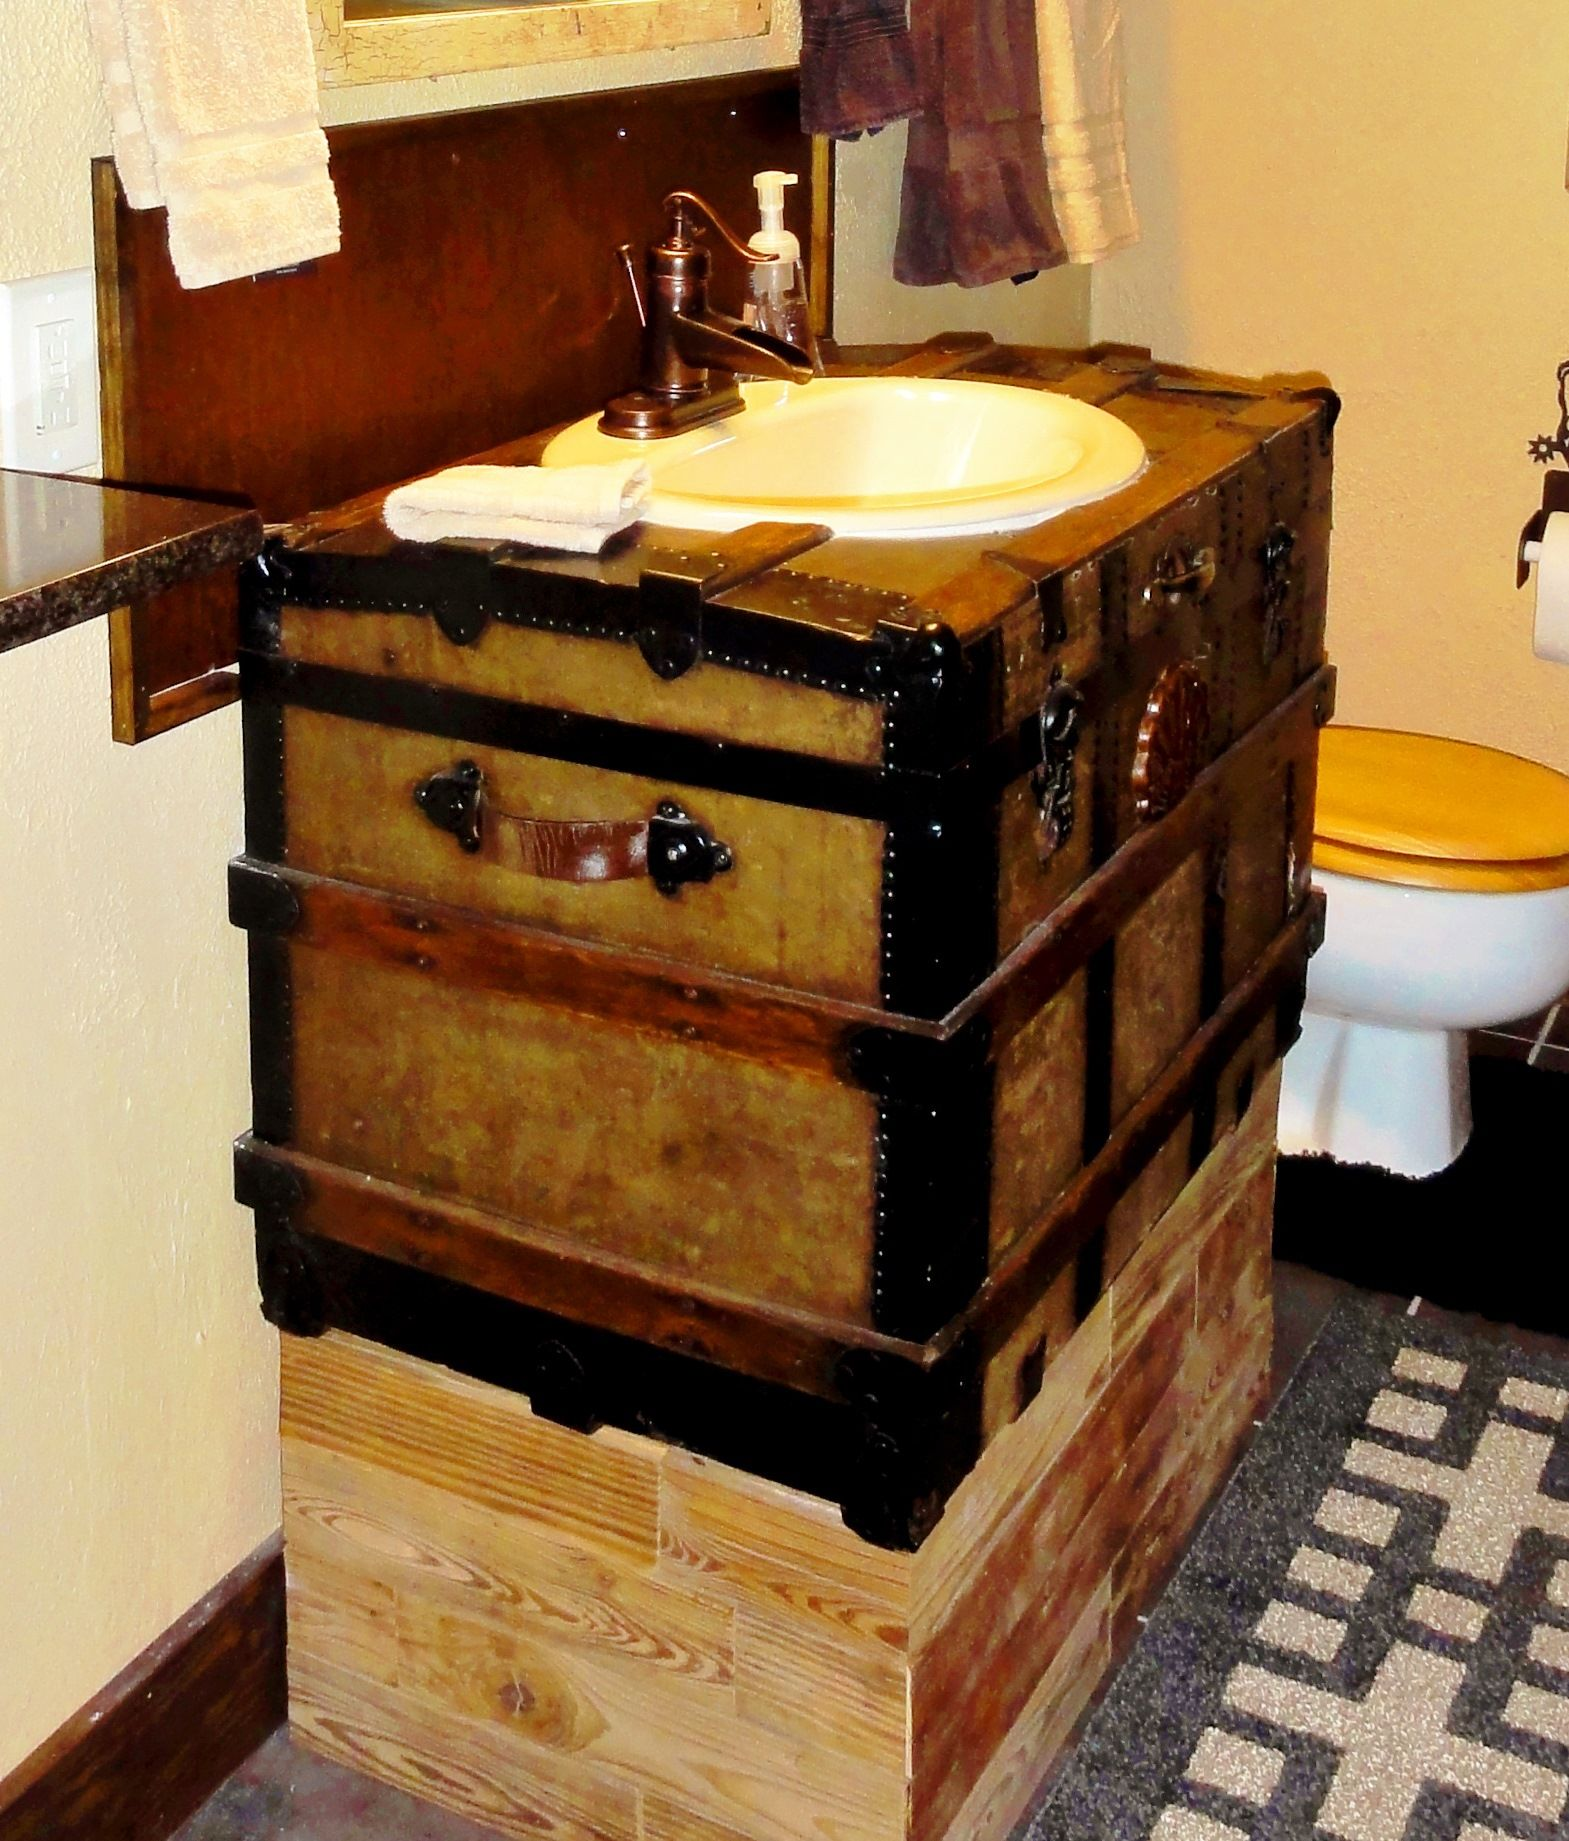 Bathroom Sink Made From An Old Western Trunk The Water Pump Faucet Found At Home Depot The Wood Ba Lake House Bathroom Sink Repair Rustic Bathroom Shower